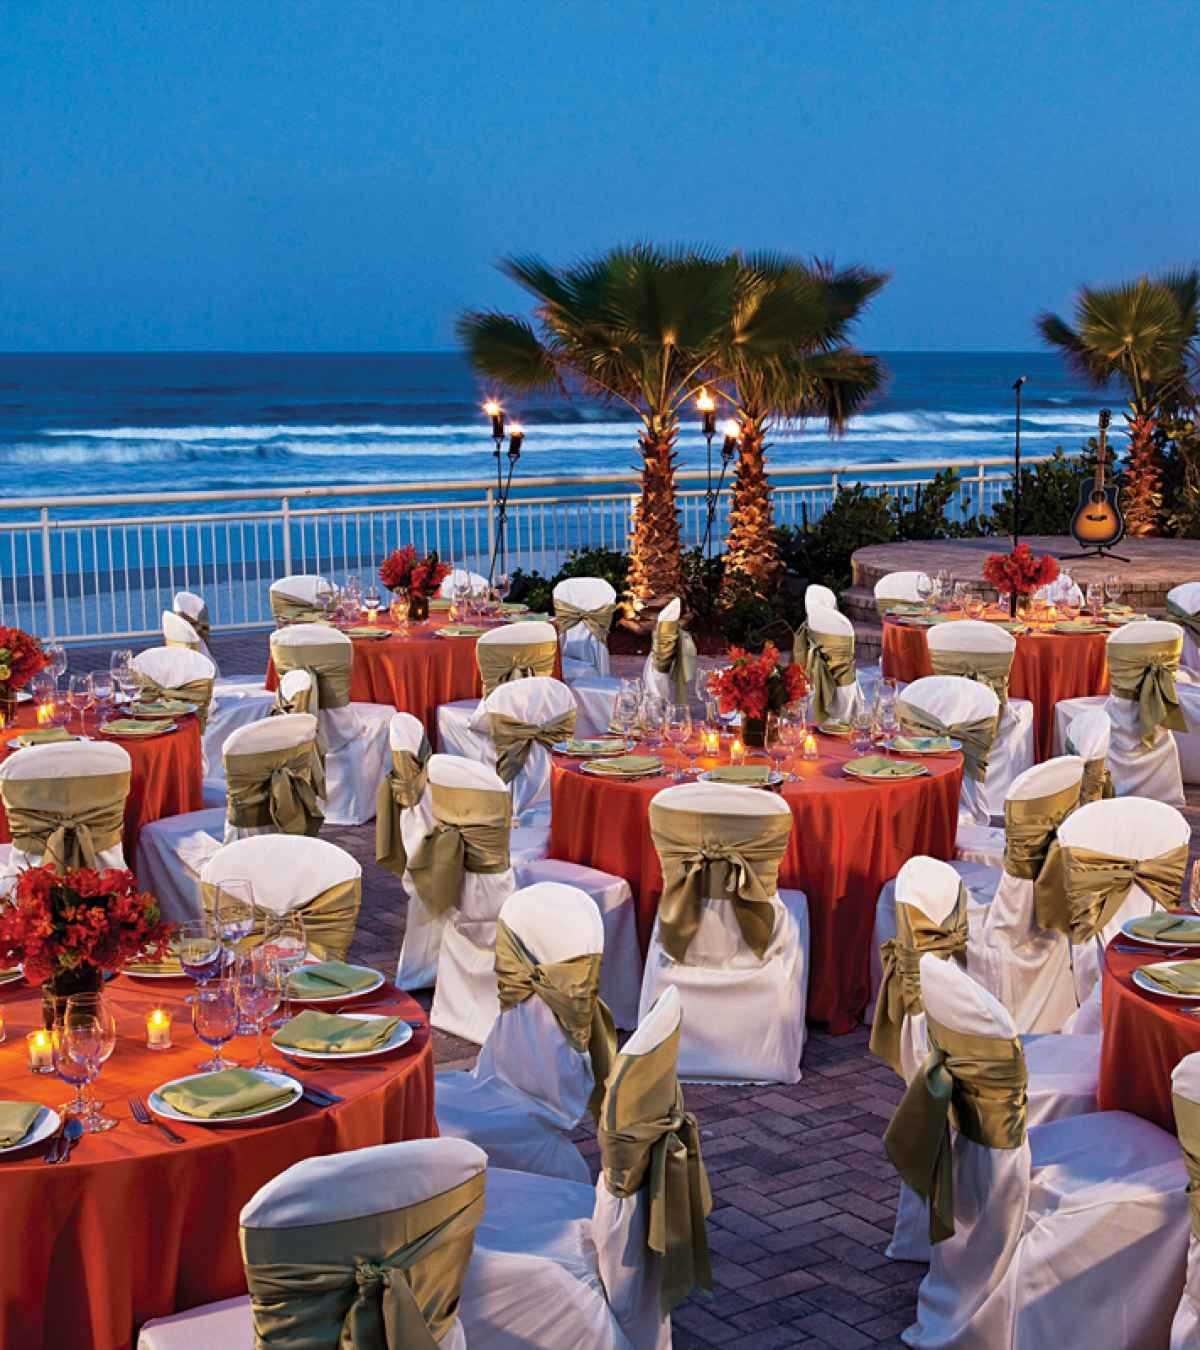 Inexpensive Wedding Venues: 10 Affordable Wedding Venues For All Budgets